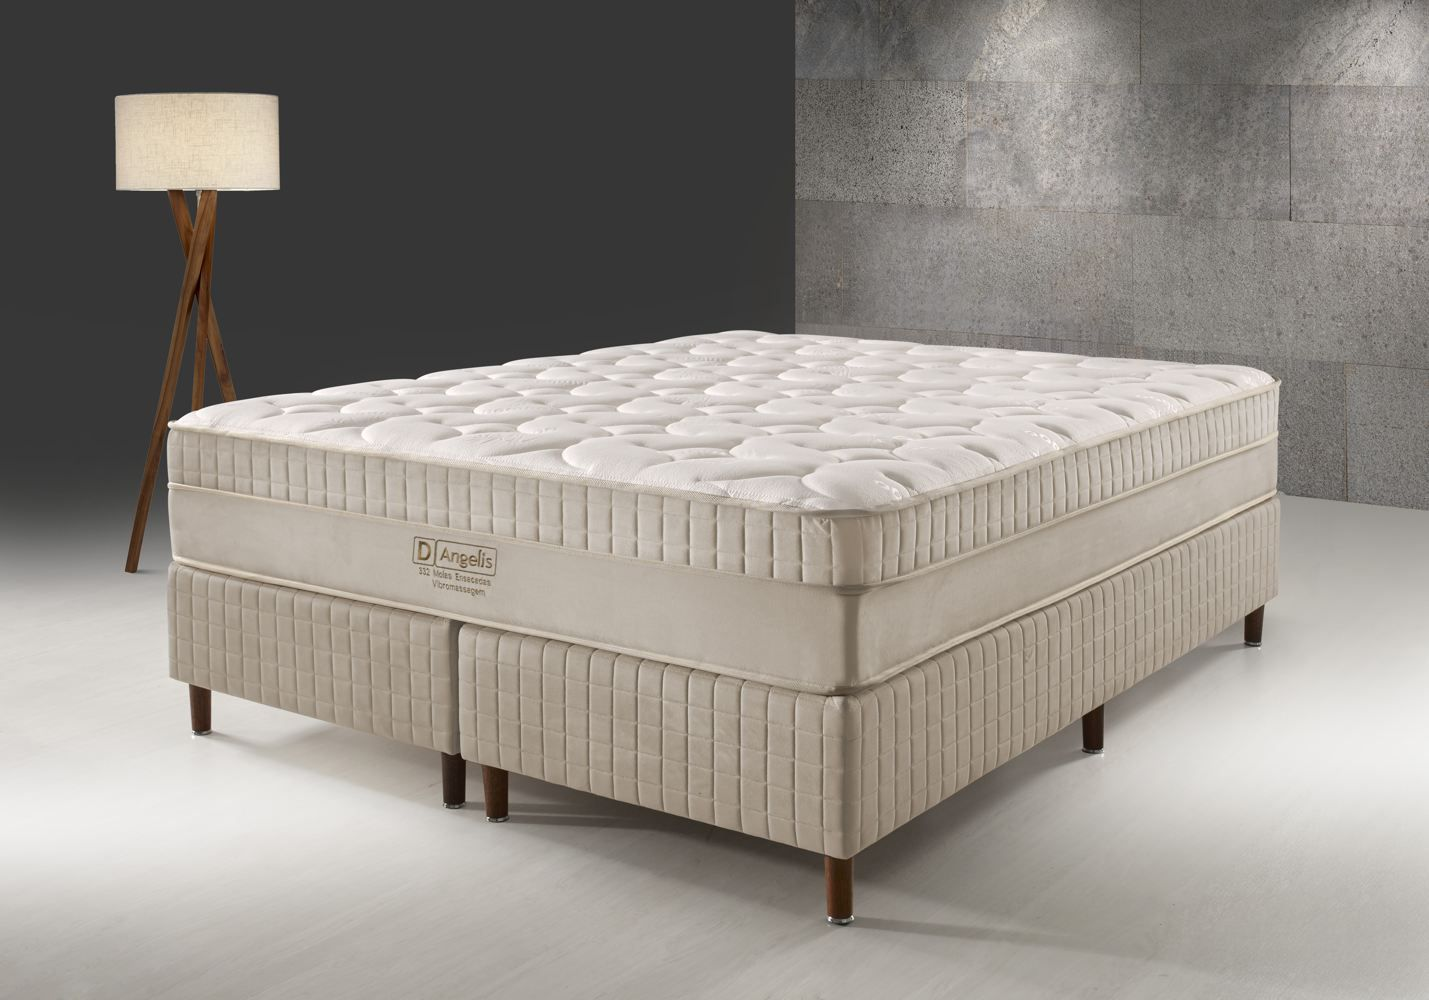 Conjunto Cama Box - DG-332 Visco Gel - D Angelis